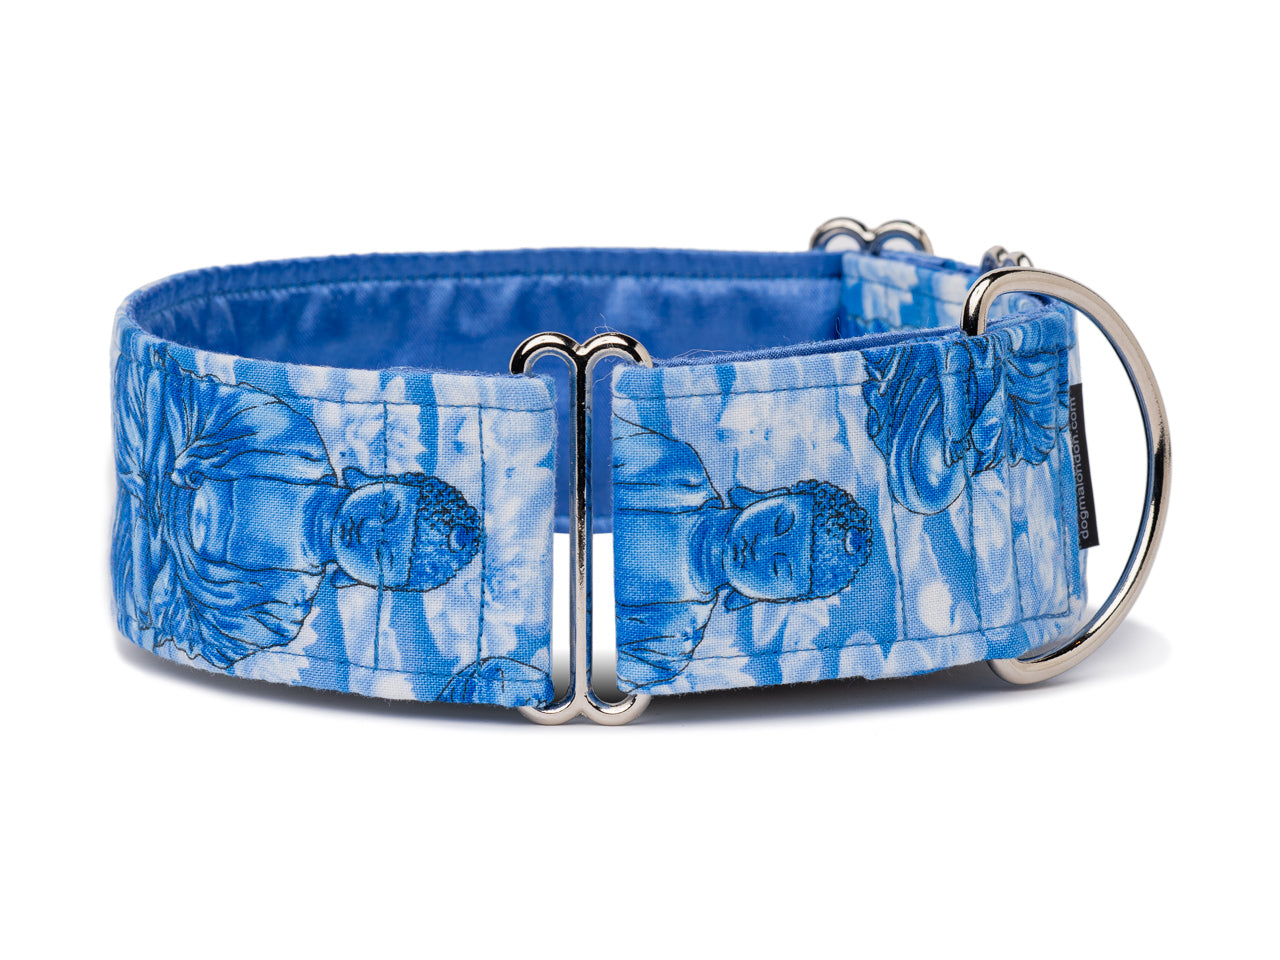 Tranquil images of Buddha in soothing blue and white will resonate with the enlightened  and stylish pooch!